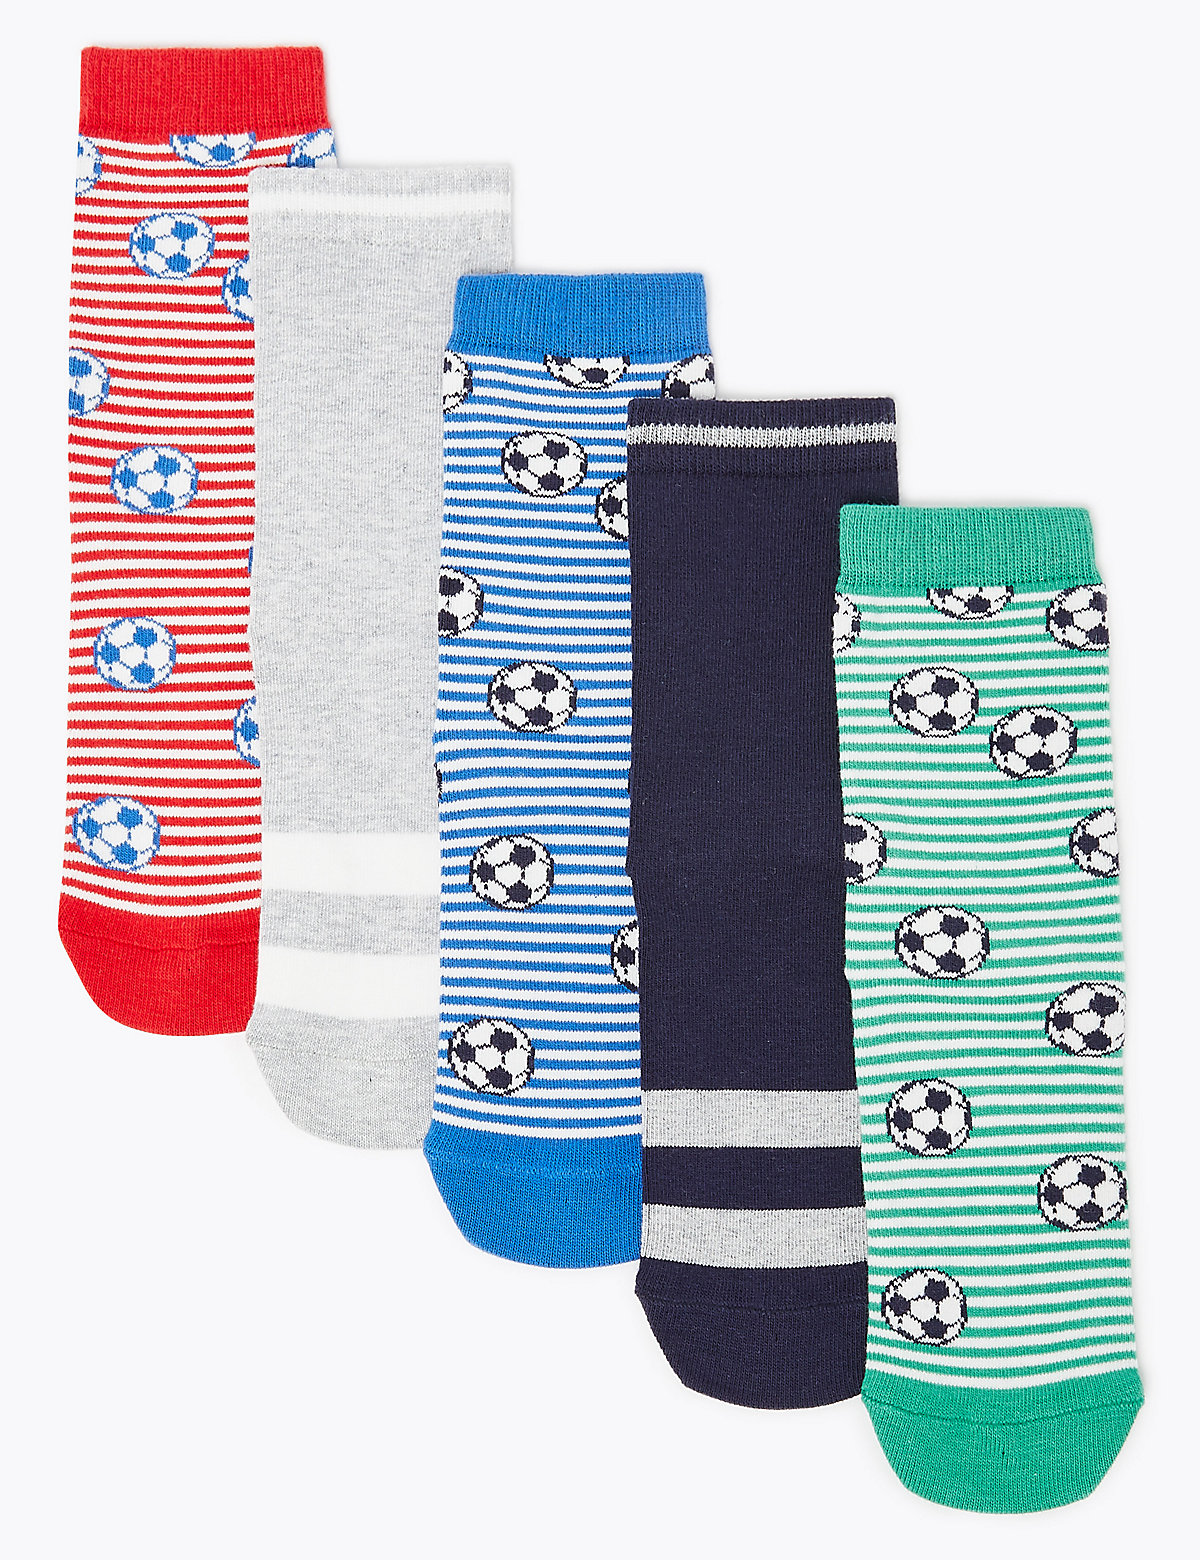 5 Pack of Cotton Rich Football Socks